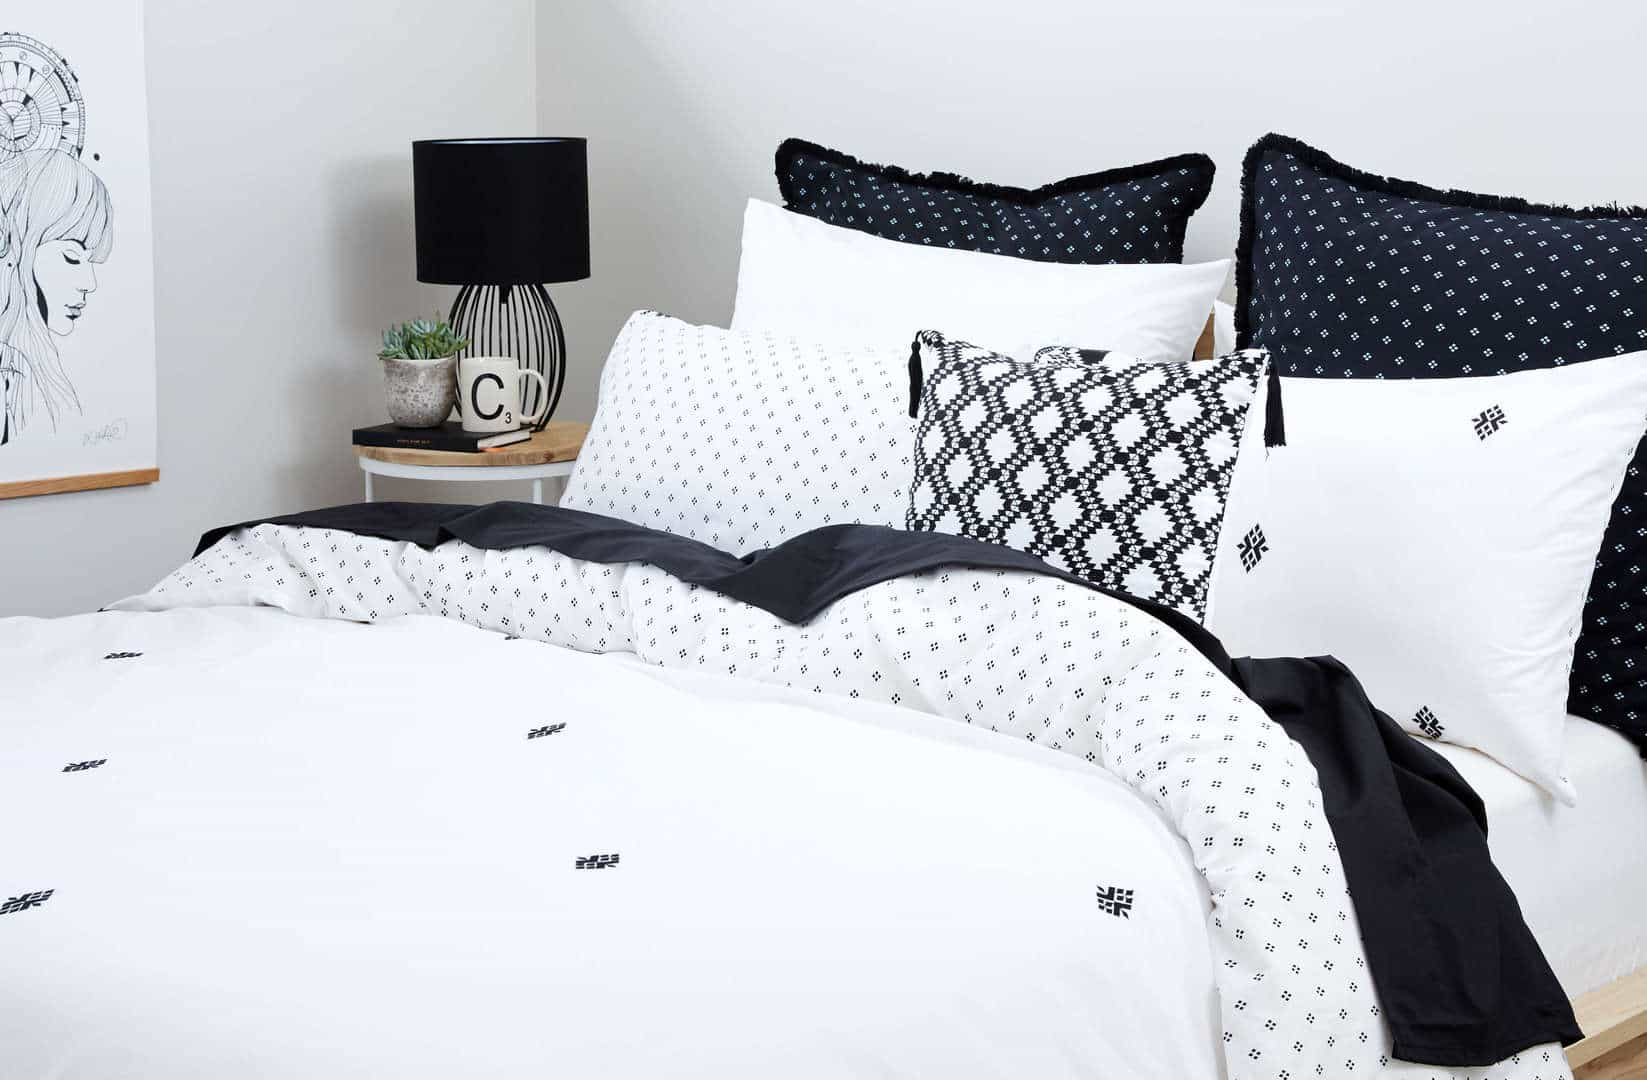 black and white bedding lorraine lea in small guest bedroom